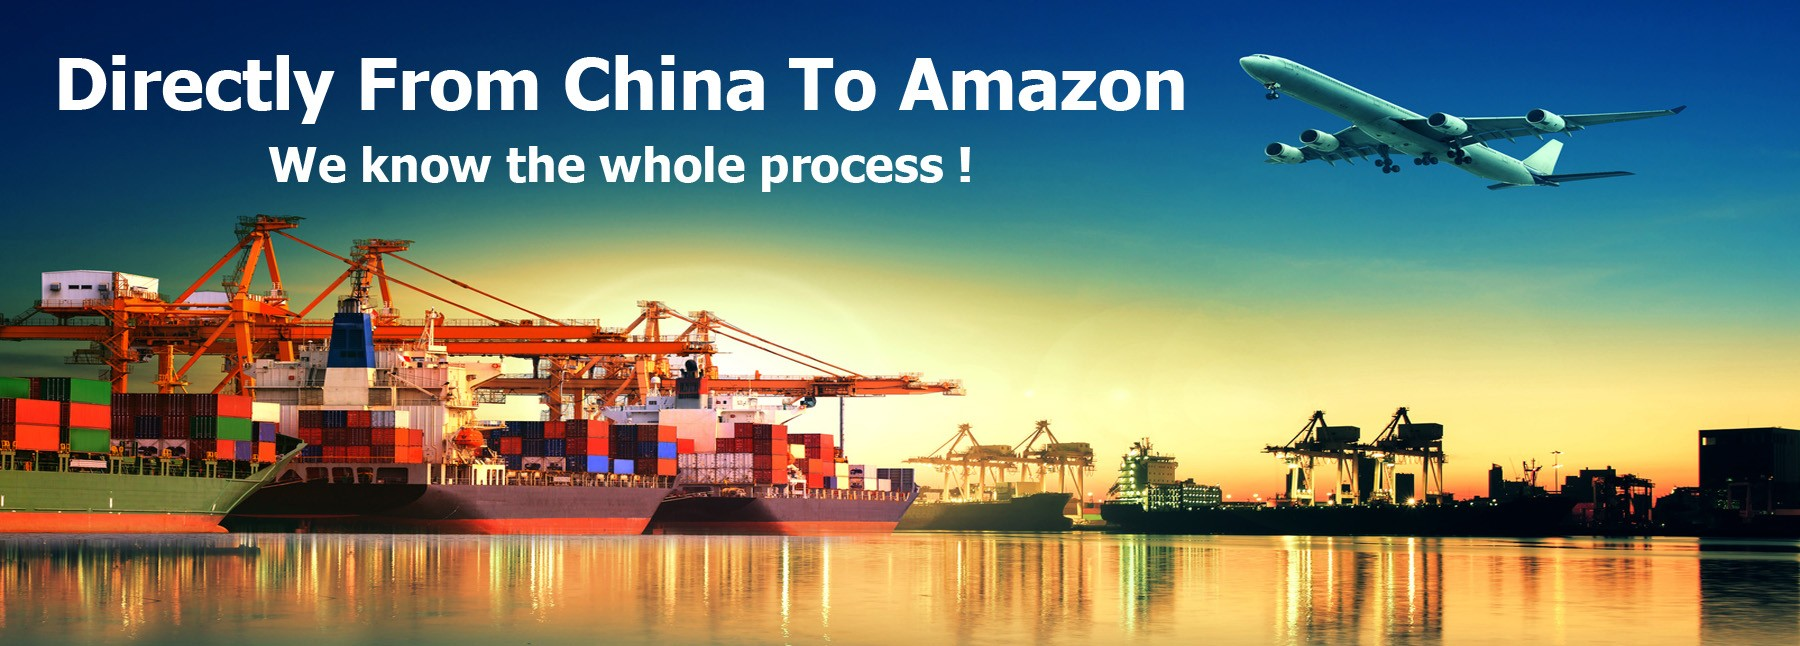 Directly from China to Amazon